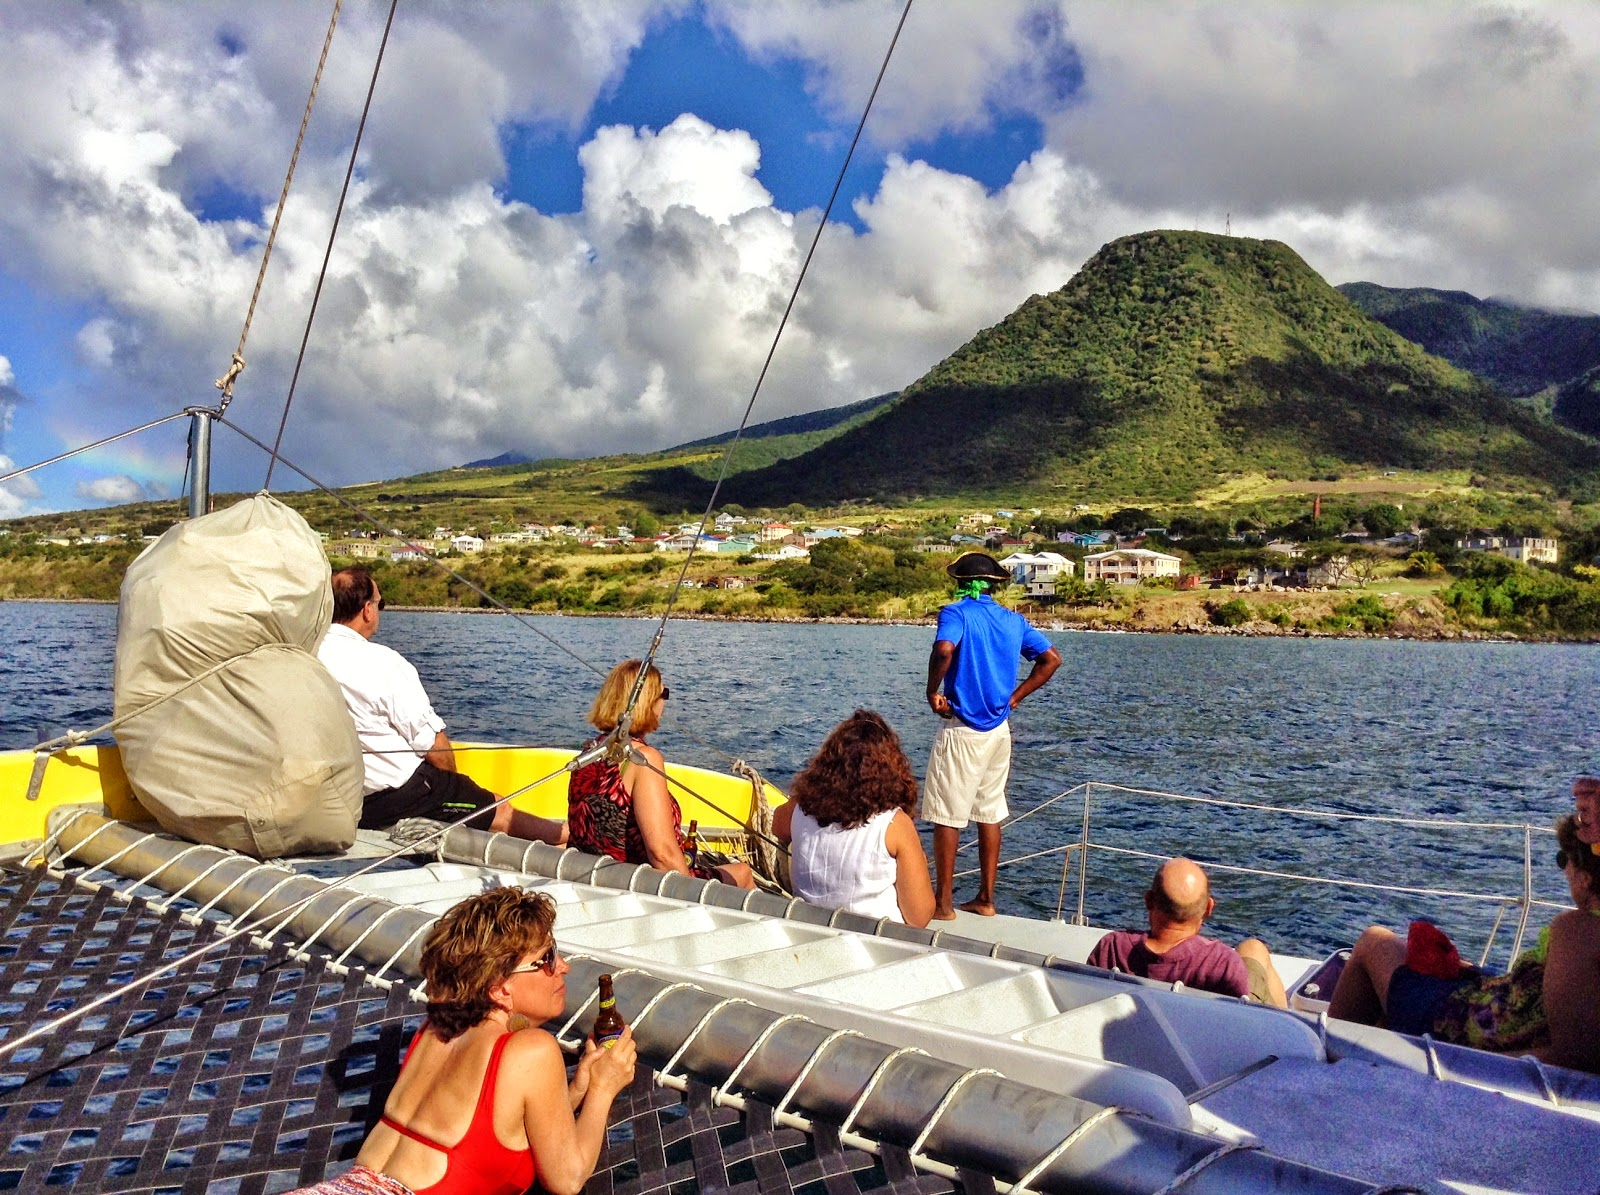 Explore The Beauty Of Caribbean: Travel 2 The Caribbean Blog: St Kitts By Rail And Sail